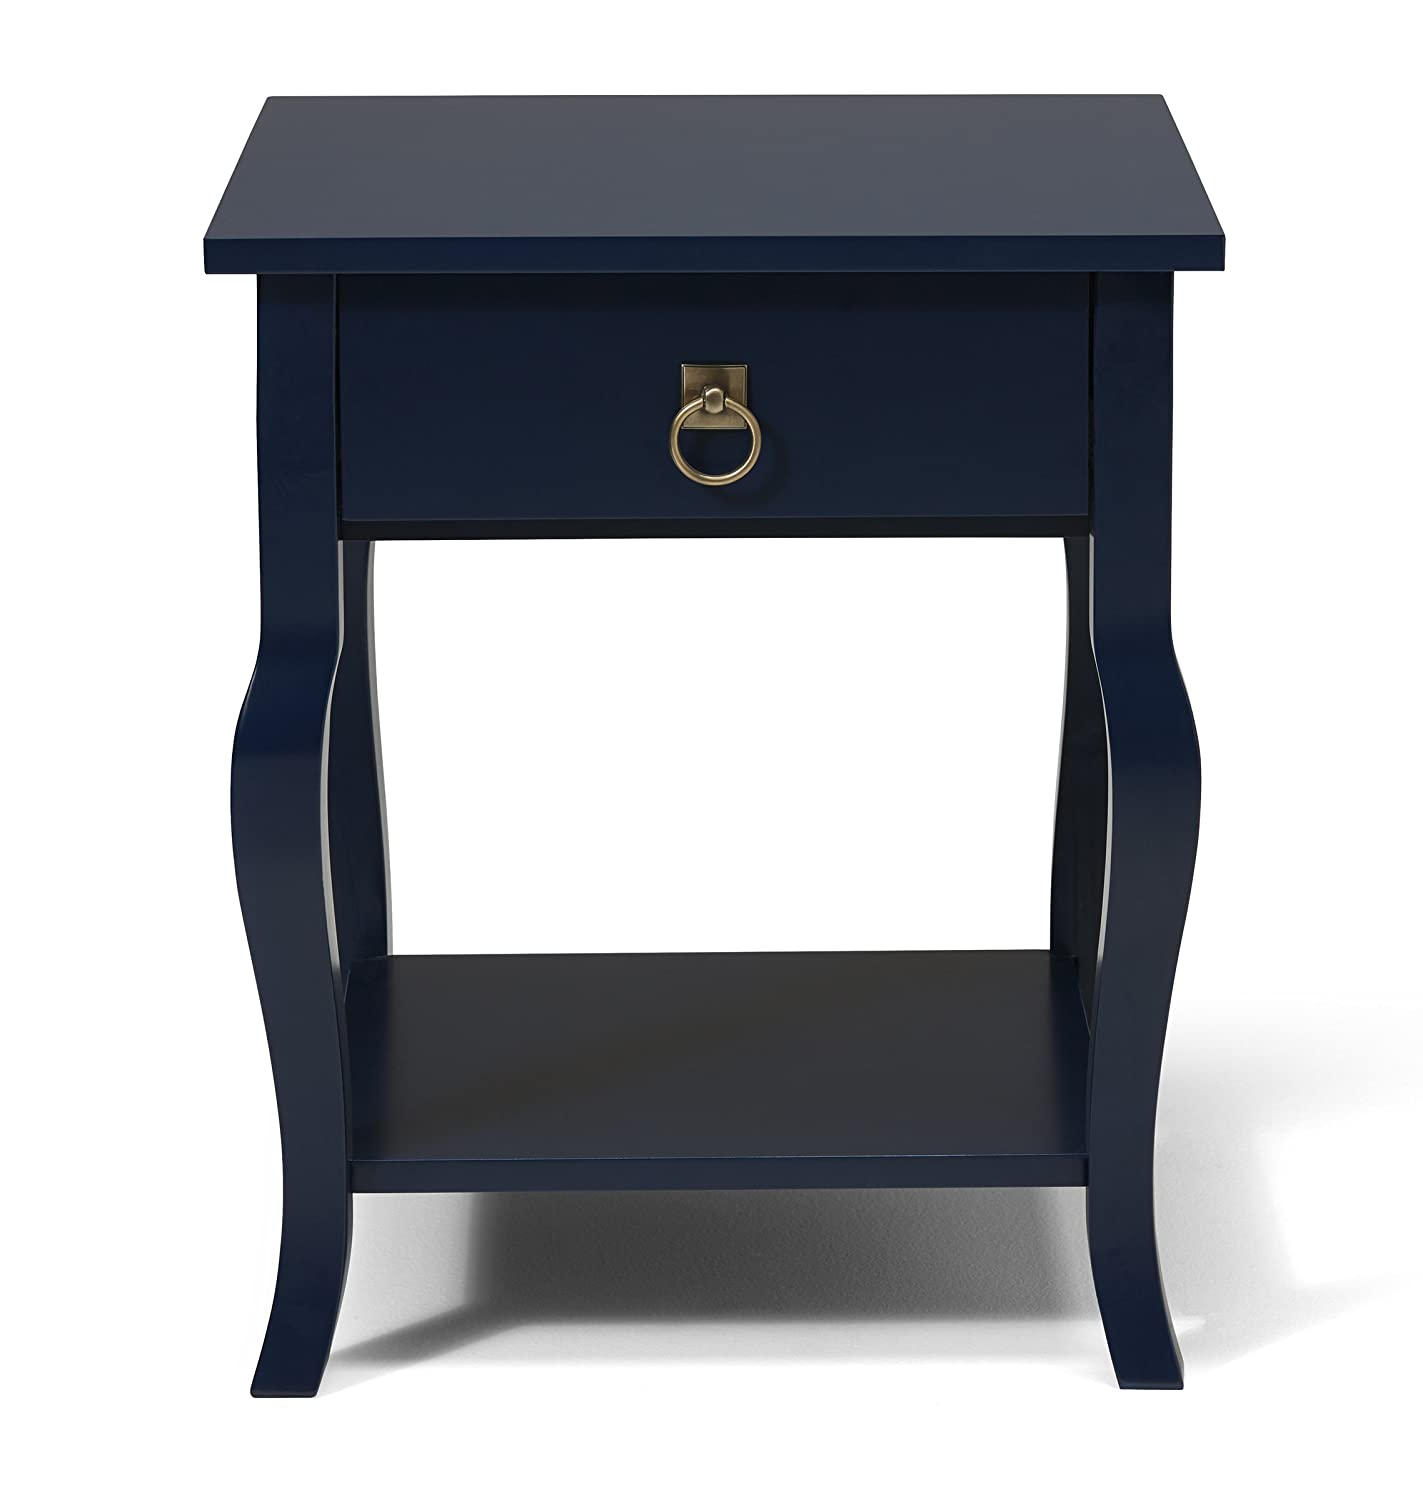 Amazon kate and laurel lillian wood side table curved legs amazon kate and laurel lillian wood side table curved legs with drawer and shelf 20 x 20 x 24 navy blue kitchen dining geotapseo Choice Image